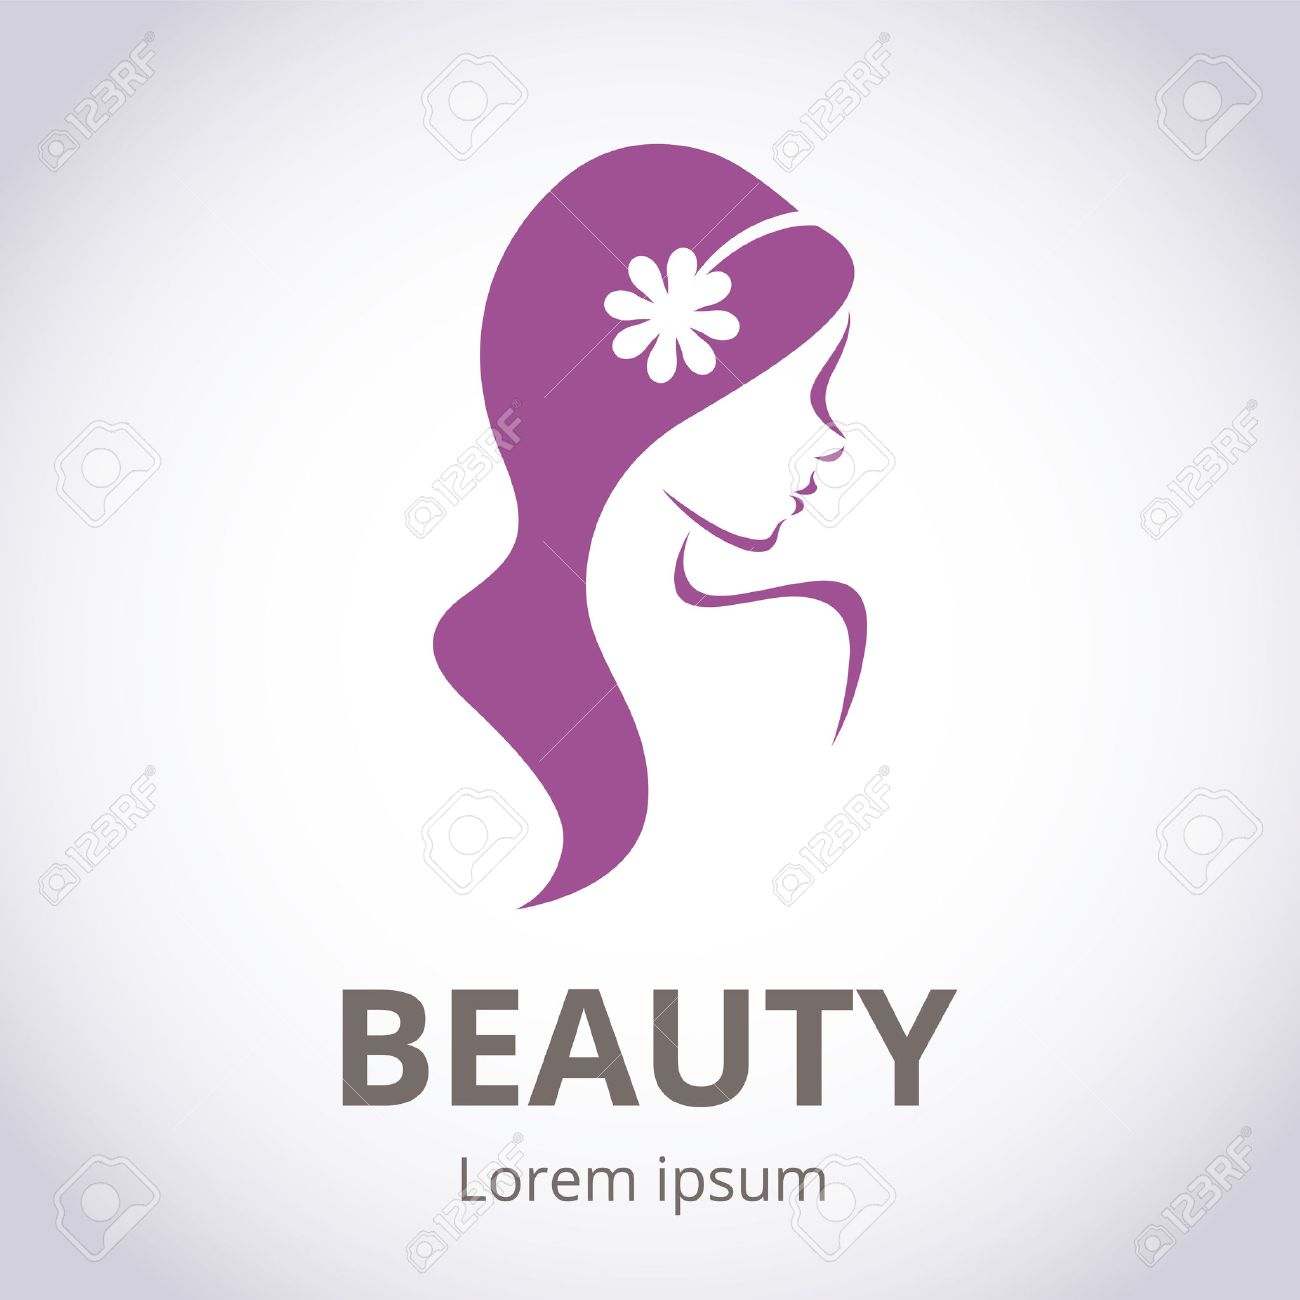 Abstract logo for beauty salon stylized profile of a young beautiful woman - 46569215